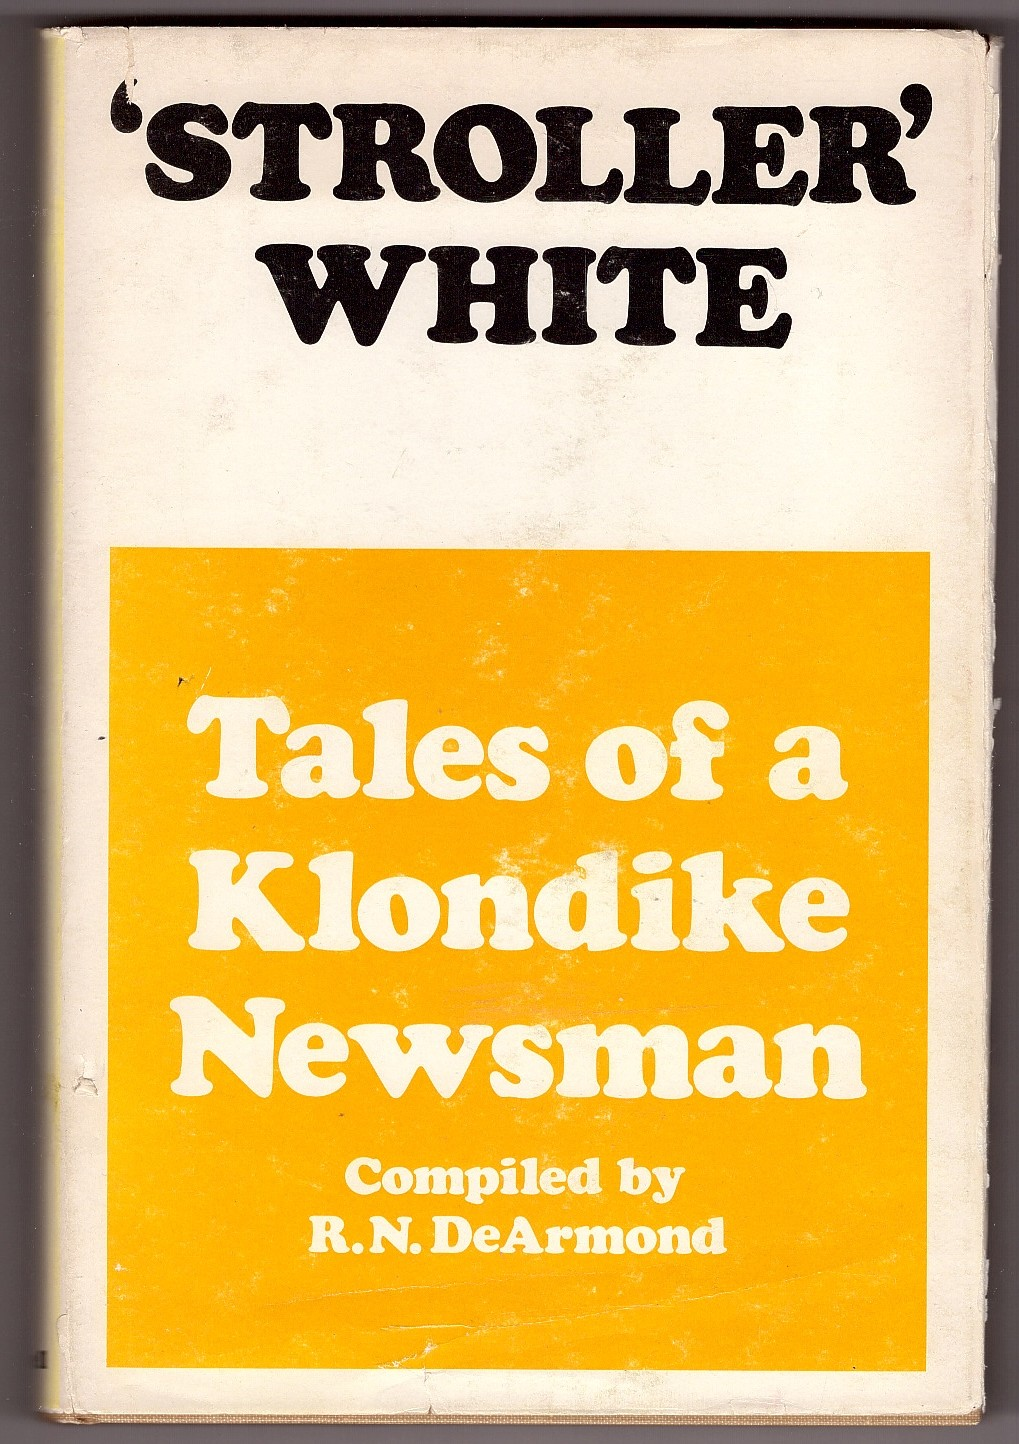 Image for 'Stroller' White Tales of a Klondike Newsman